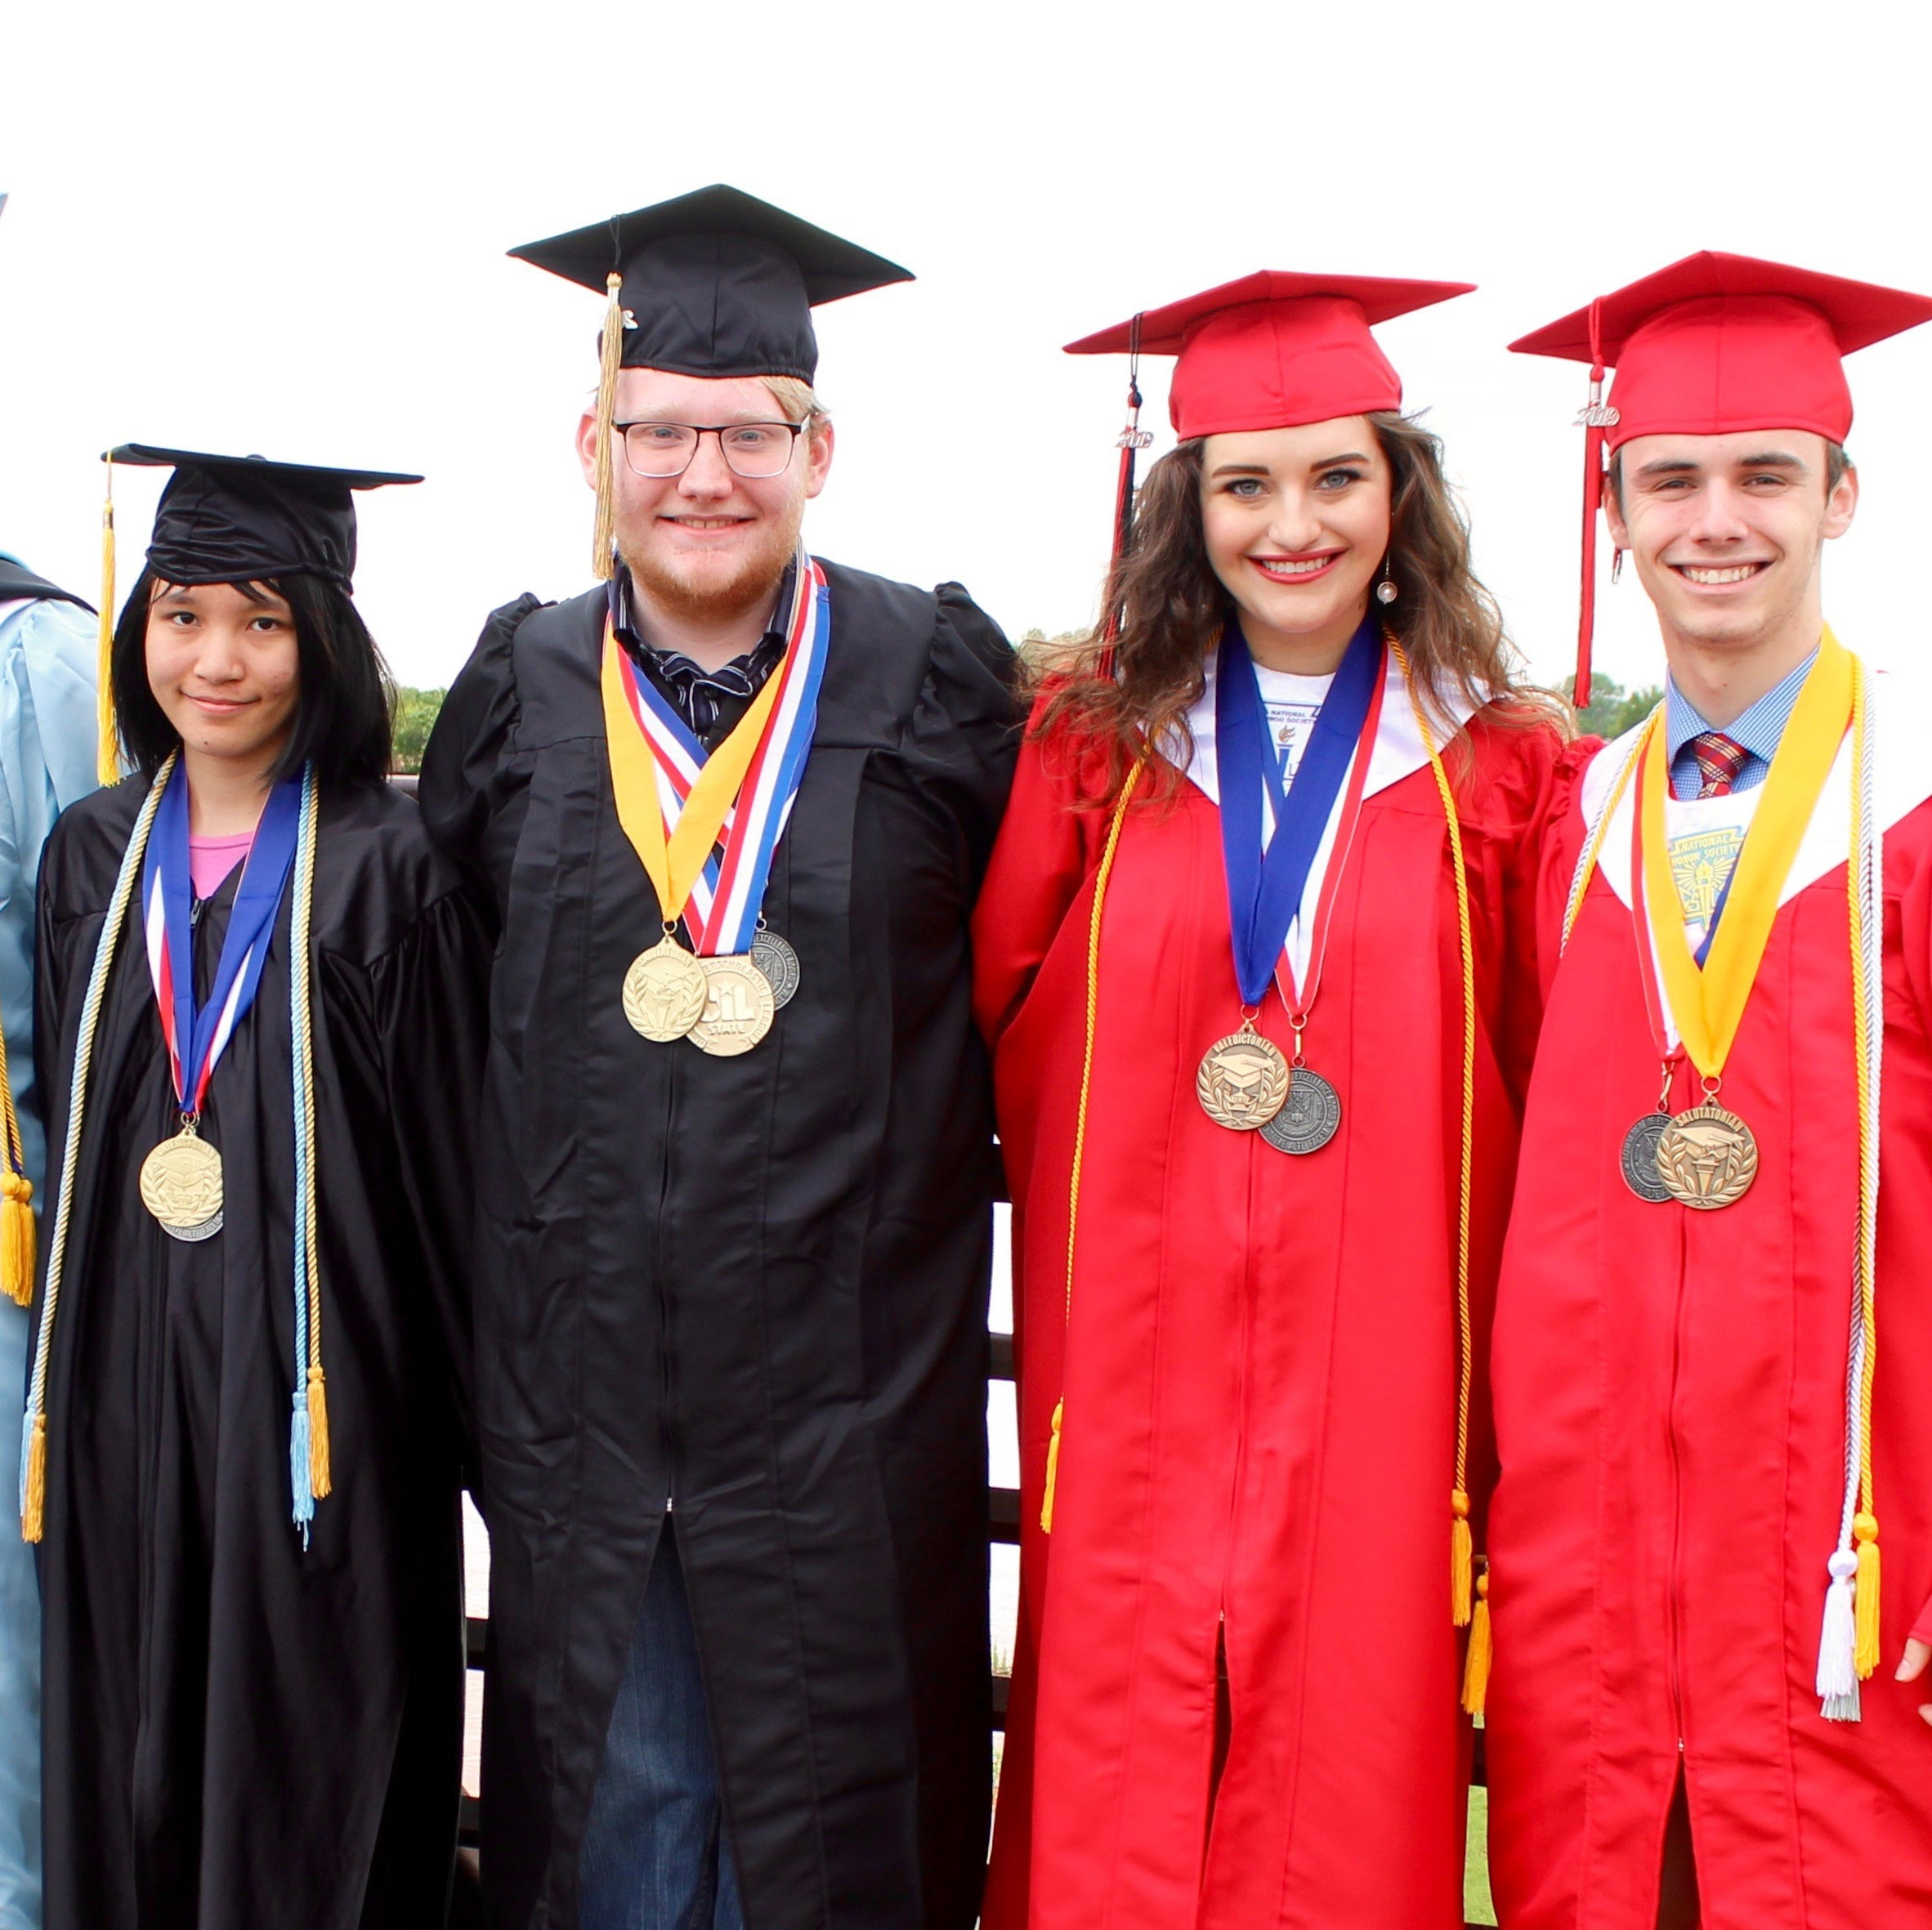 WFISD announces valedictorians and salutatorians for three high schools